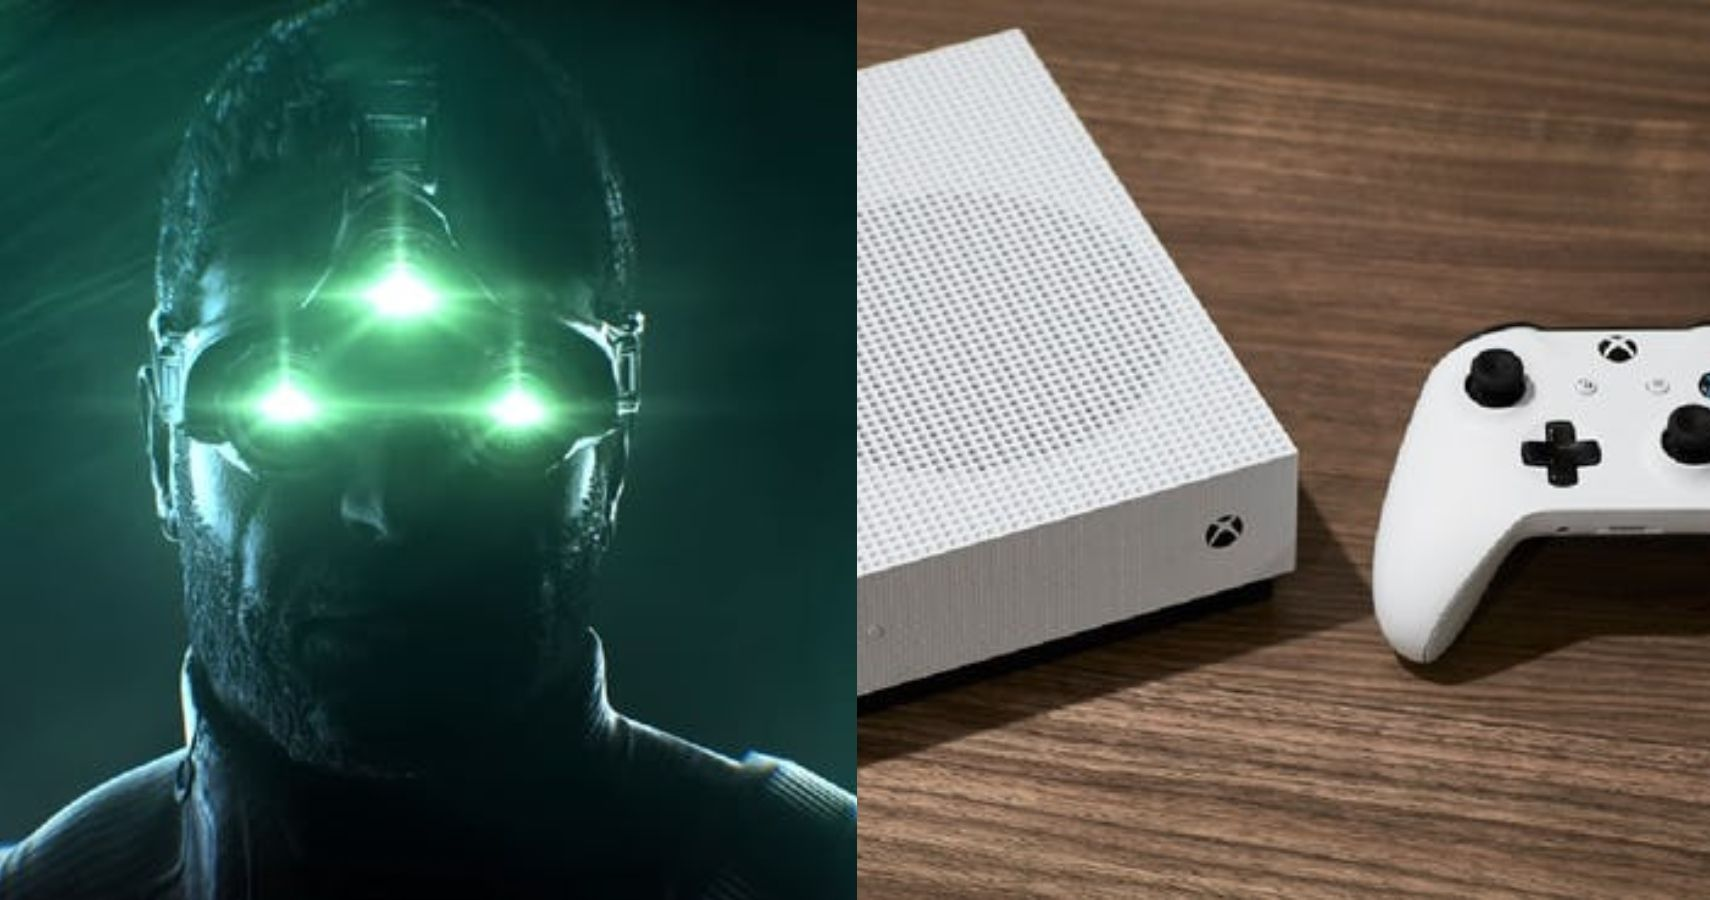 project scarlett  10 new rumors about the xbox 2020 that